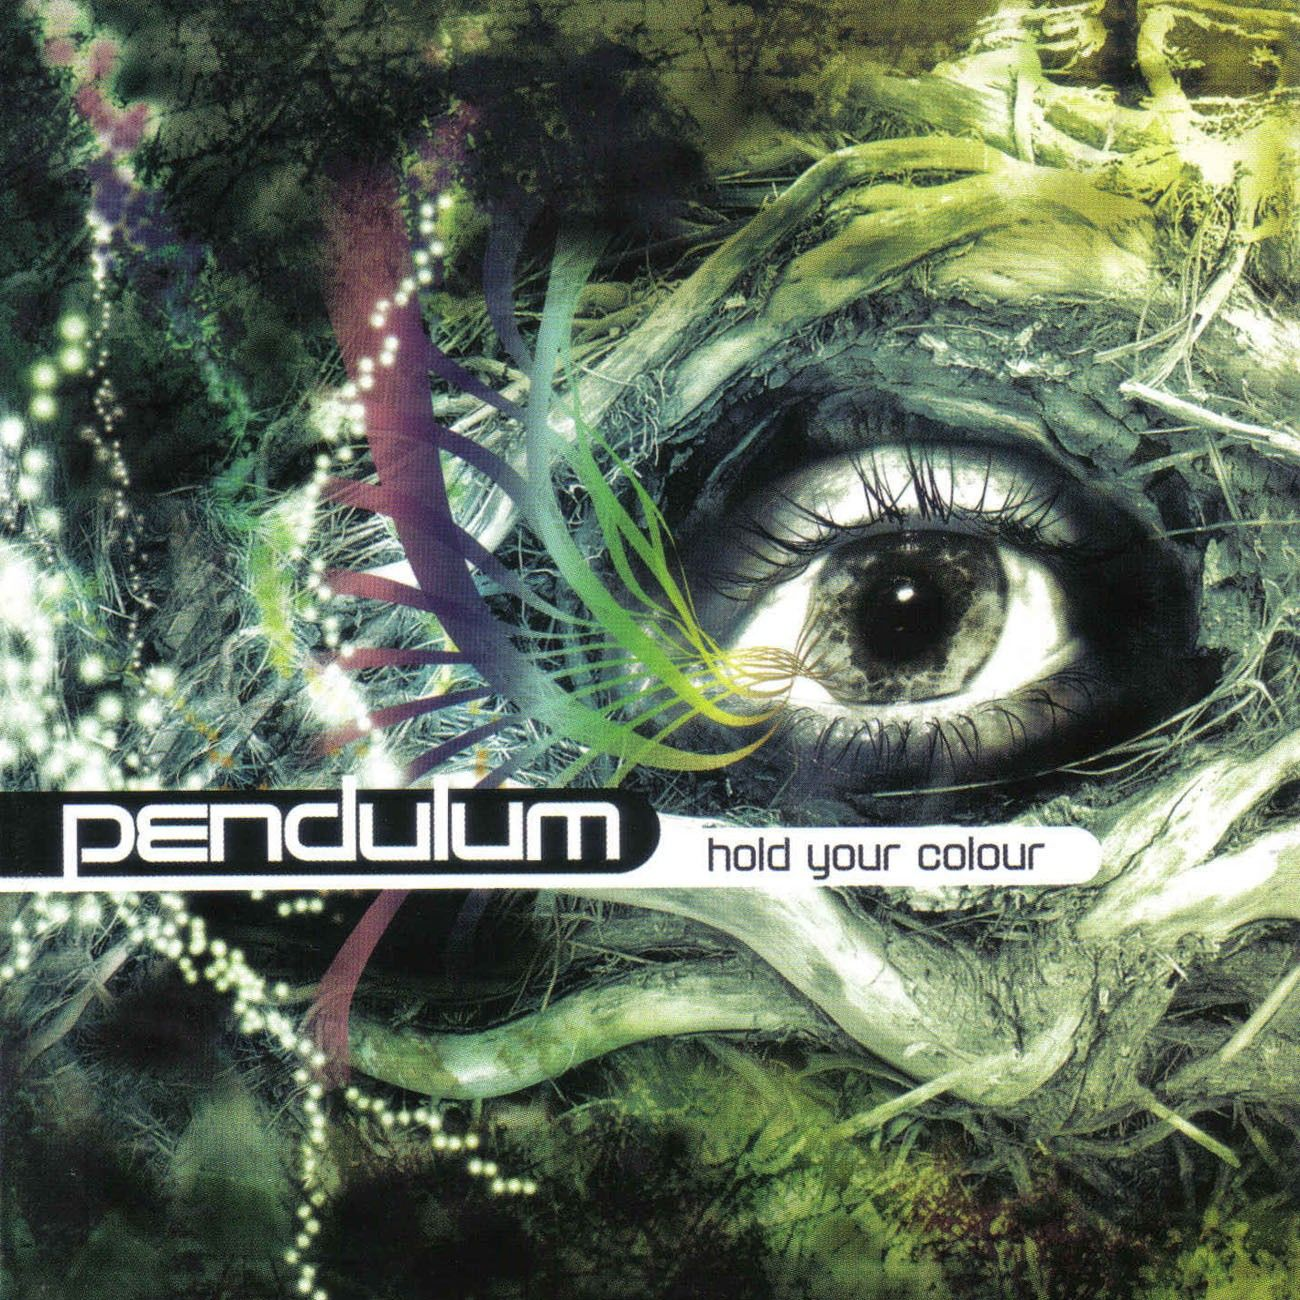 Pendulum/HOLD YOUR COLOUR (2018) 3LP